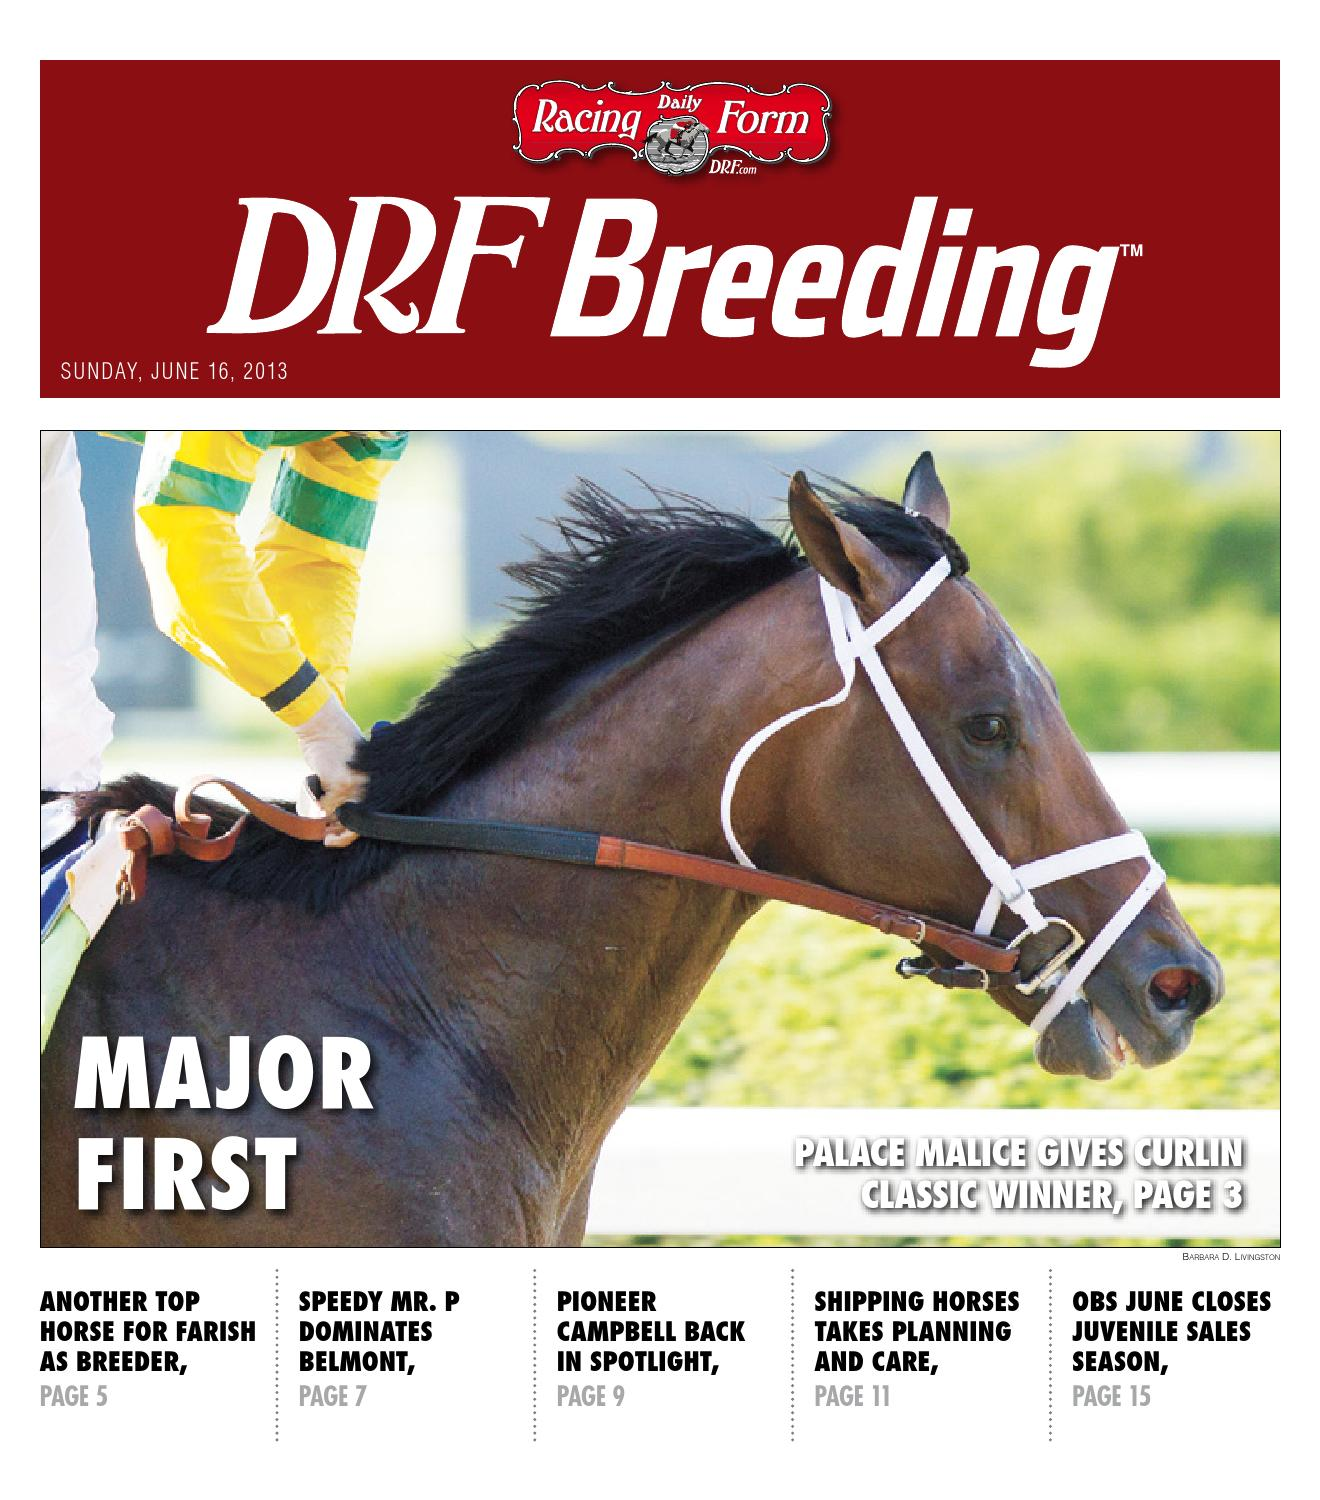 Drf breeeding 6 16 by Chris Donofry - issuu